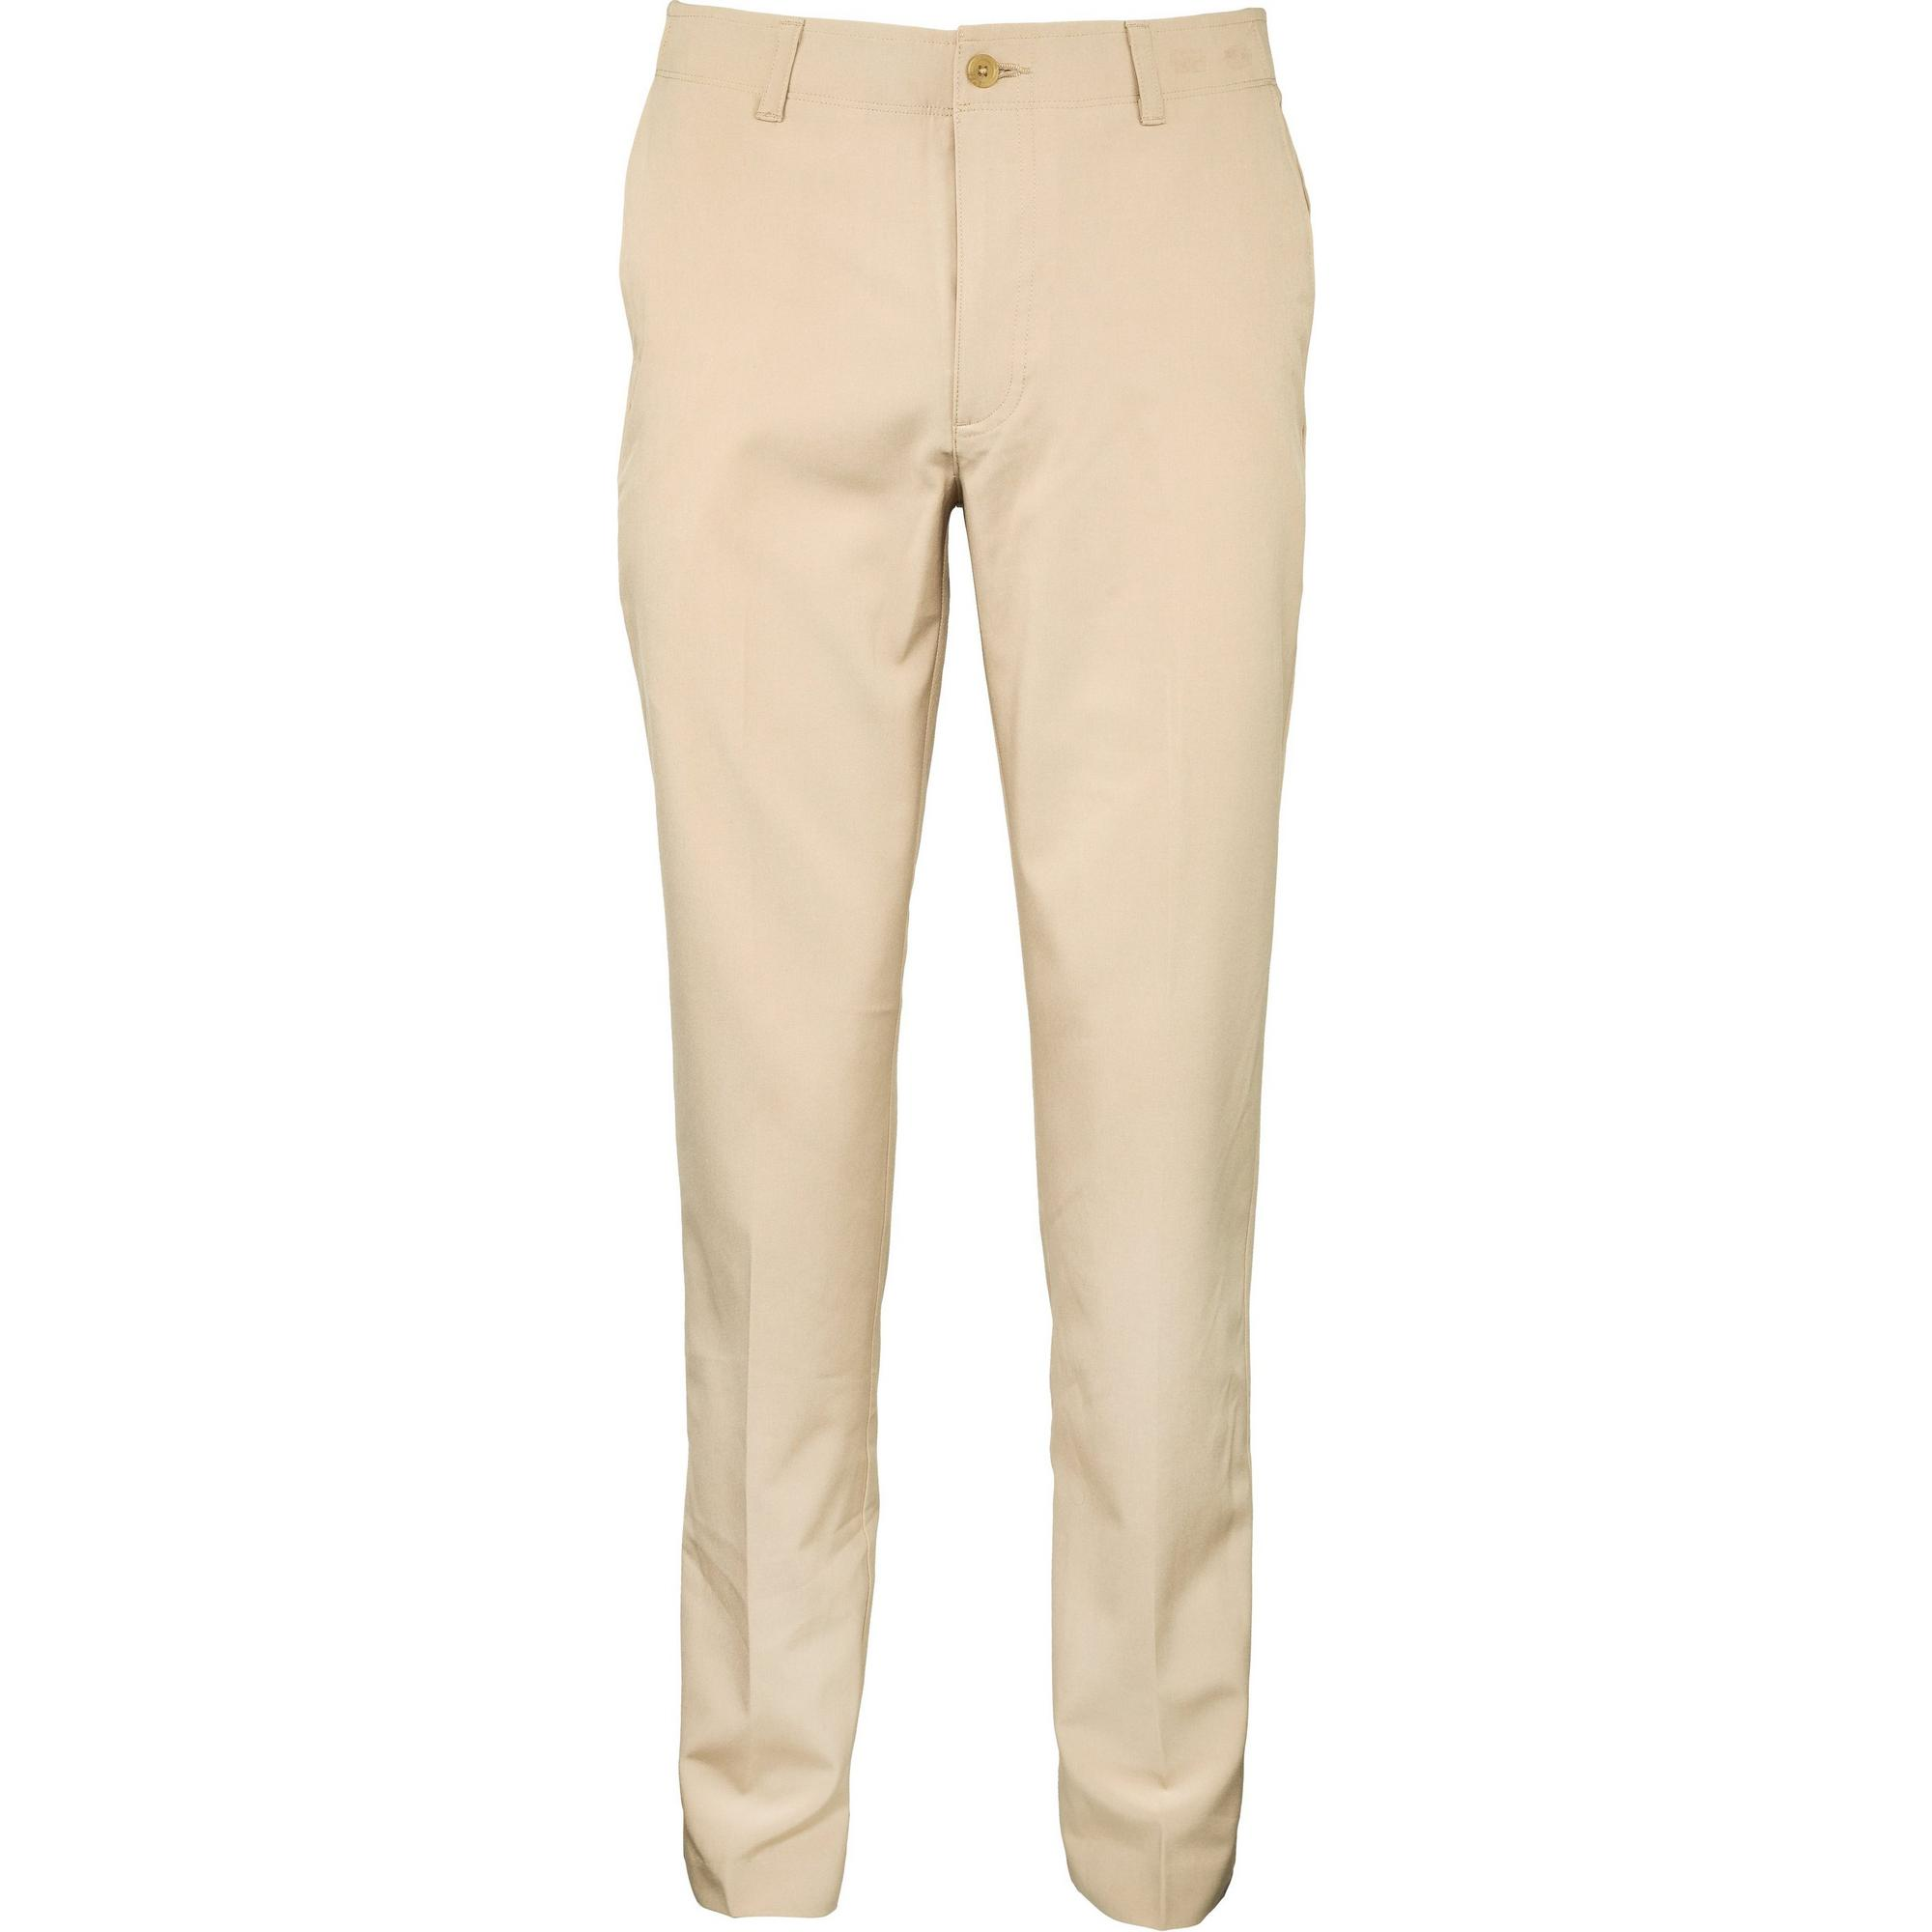 Men's Solid Pant with Active Waistband